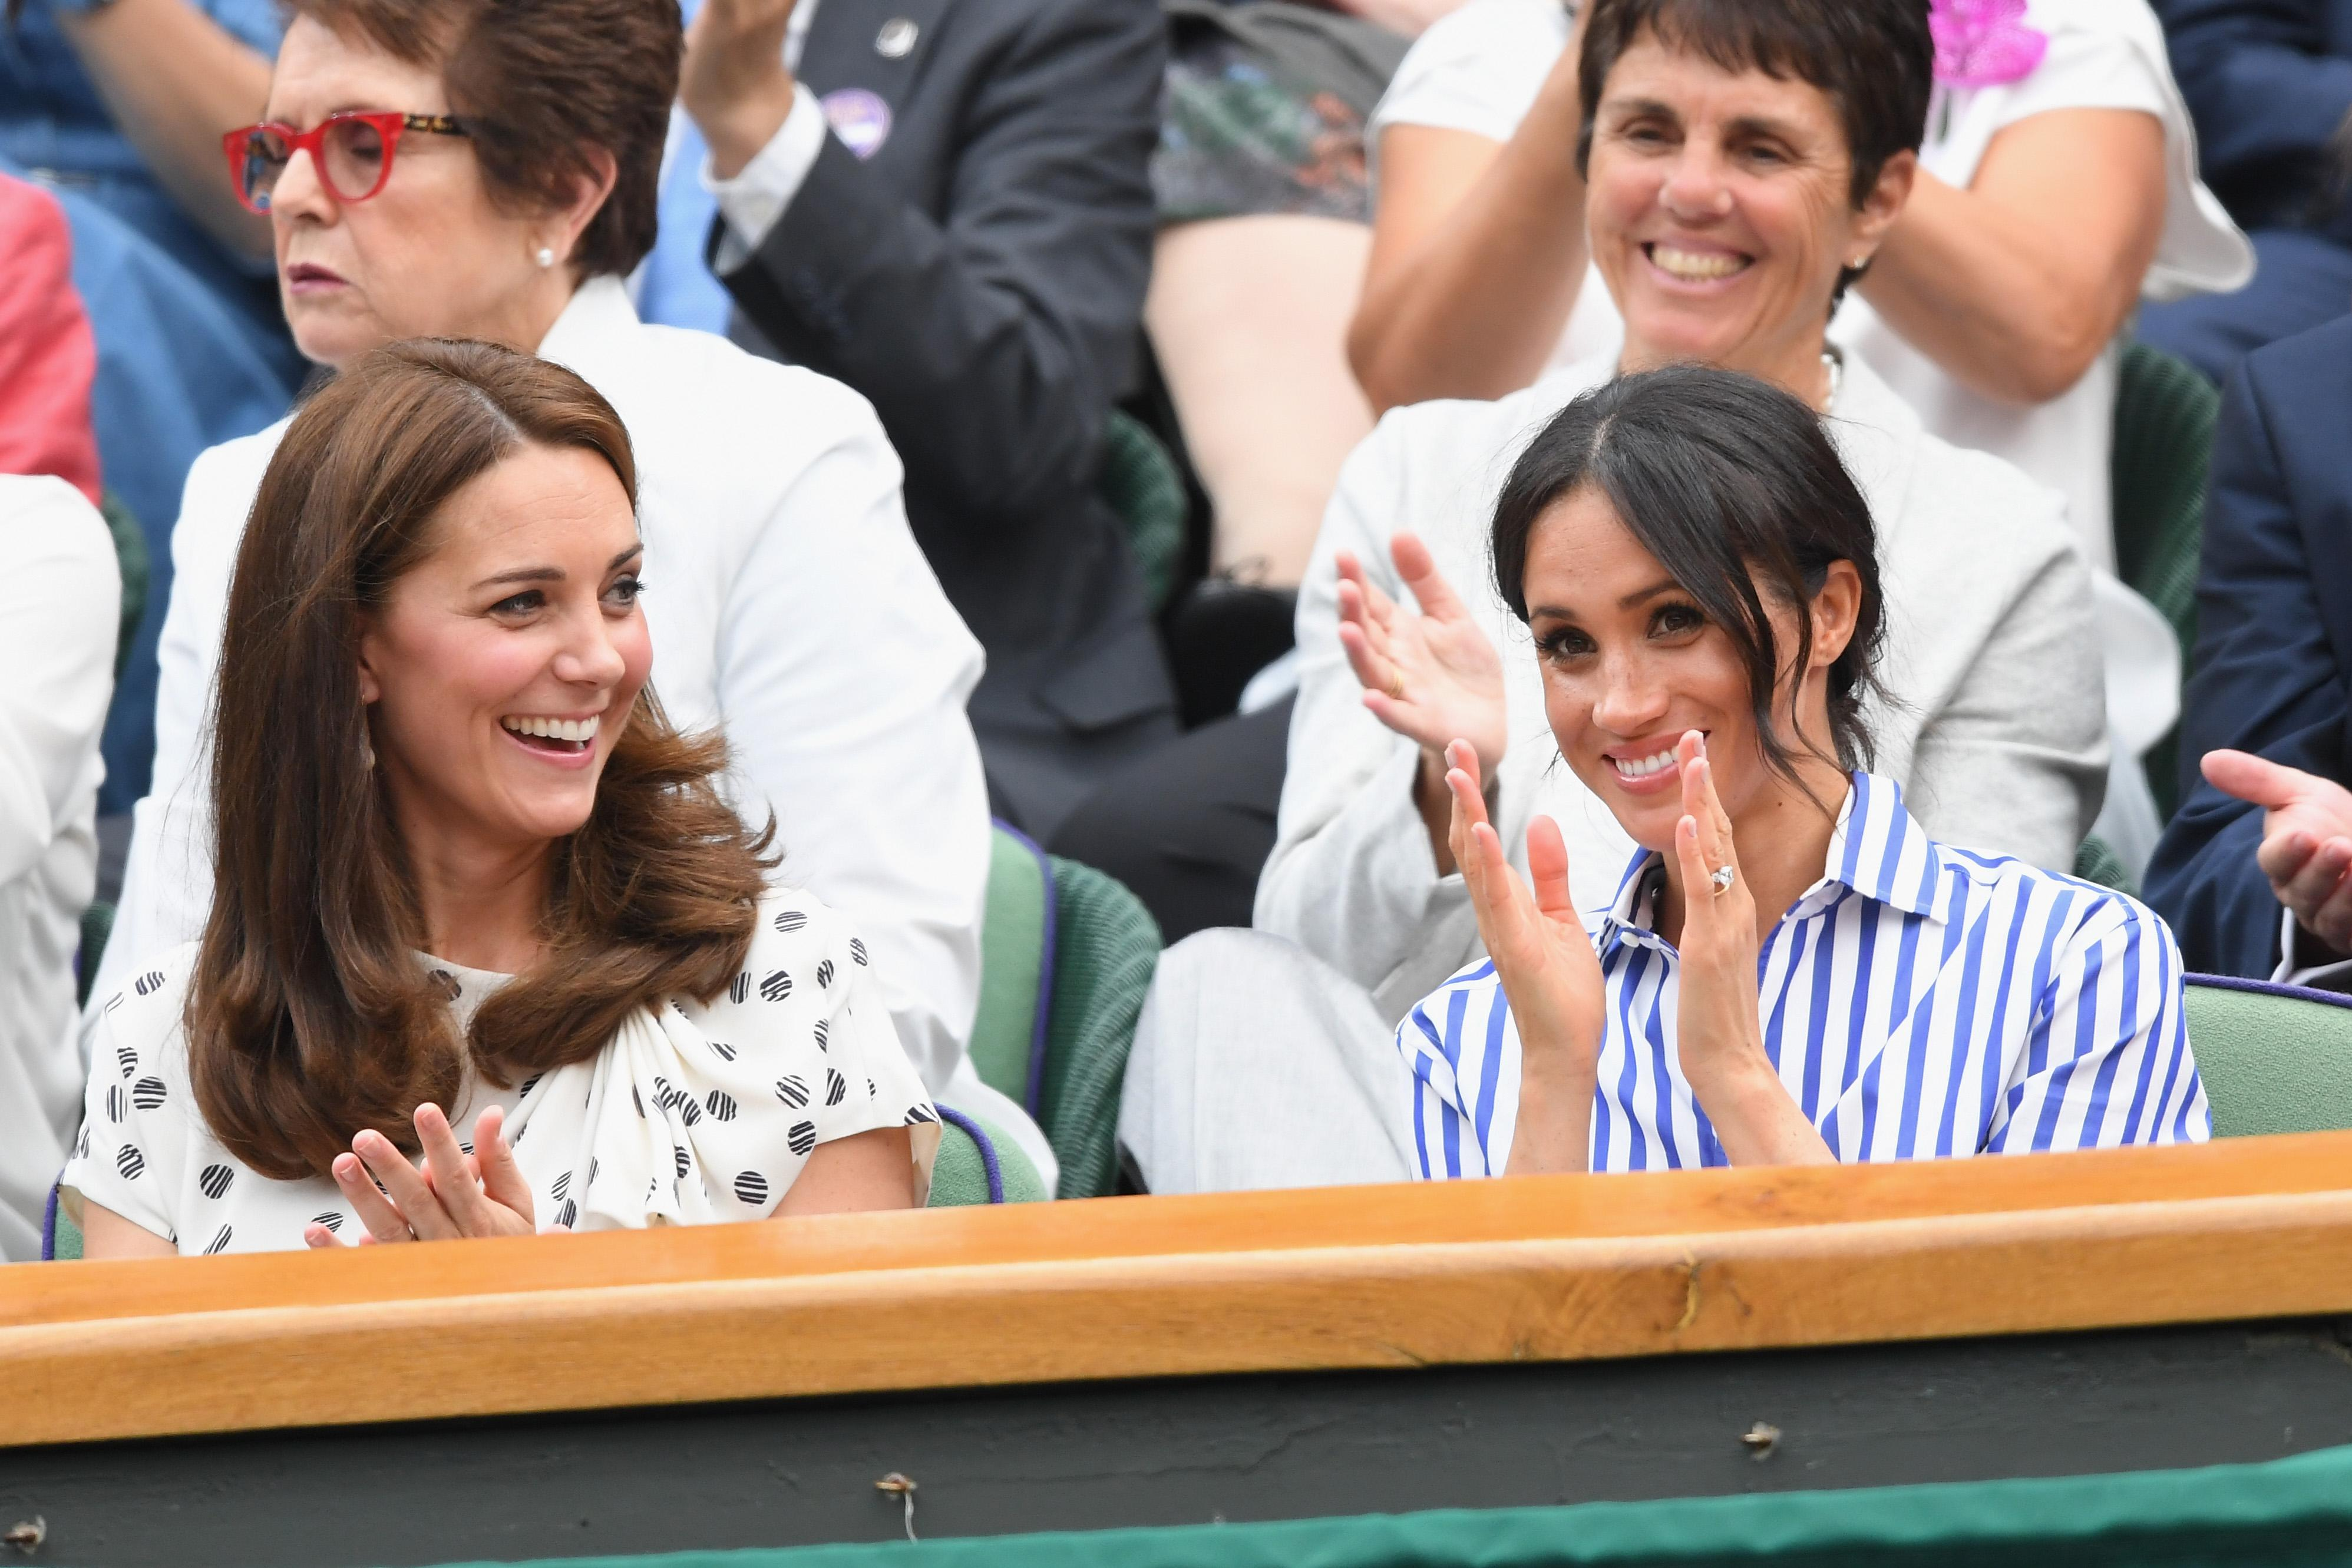 LONDON, ENGLAND - JULY 14: Catherine, Duchess of Cambridge and Meghan, Duchess of Sussex attend day twelve of the Wimbledon Tennis Championships at the All England Lawn Tennis and Croquet Club on July 13, 2018 in London, England. (Photo by Karwai Tang/WireImage )